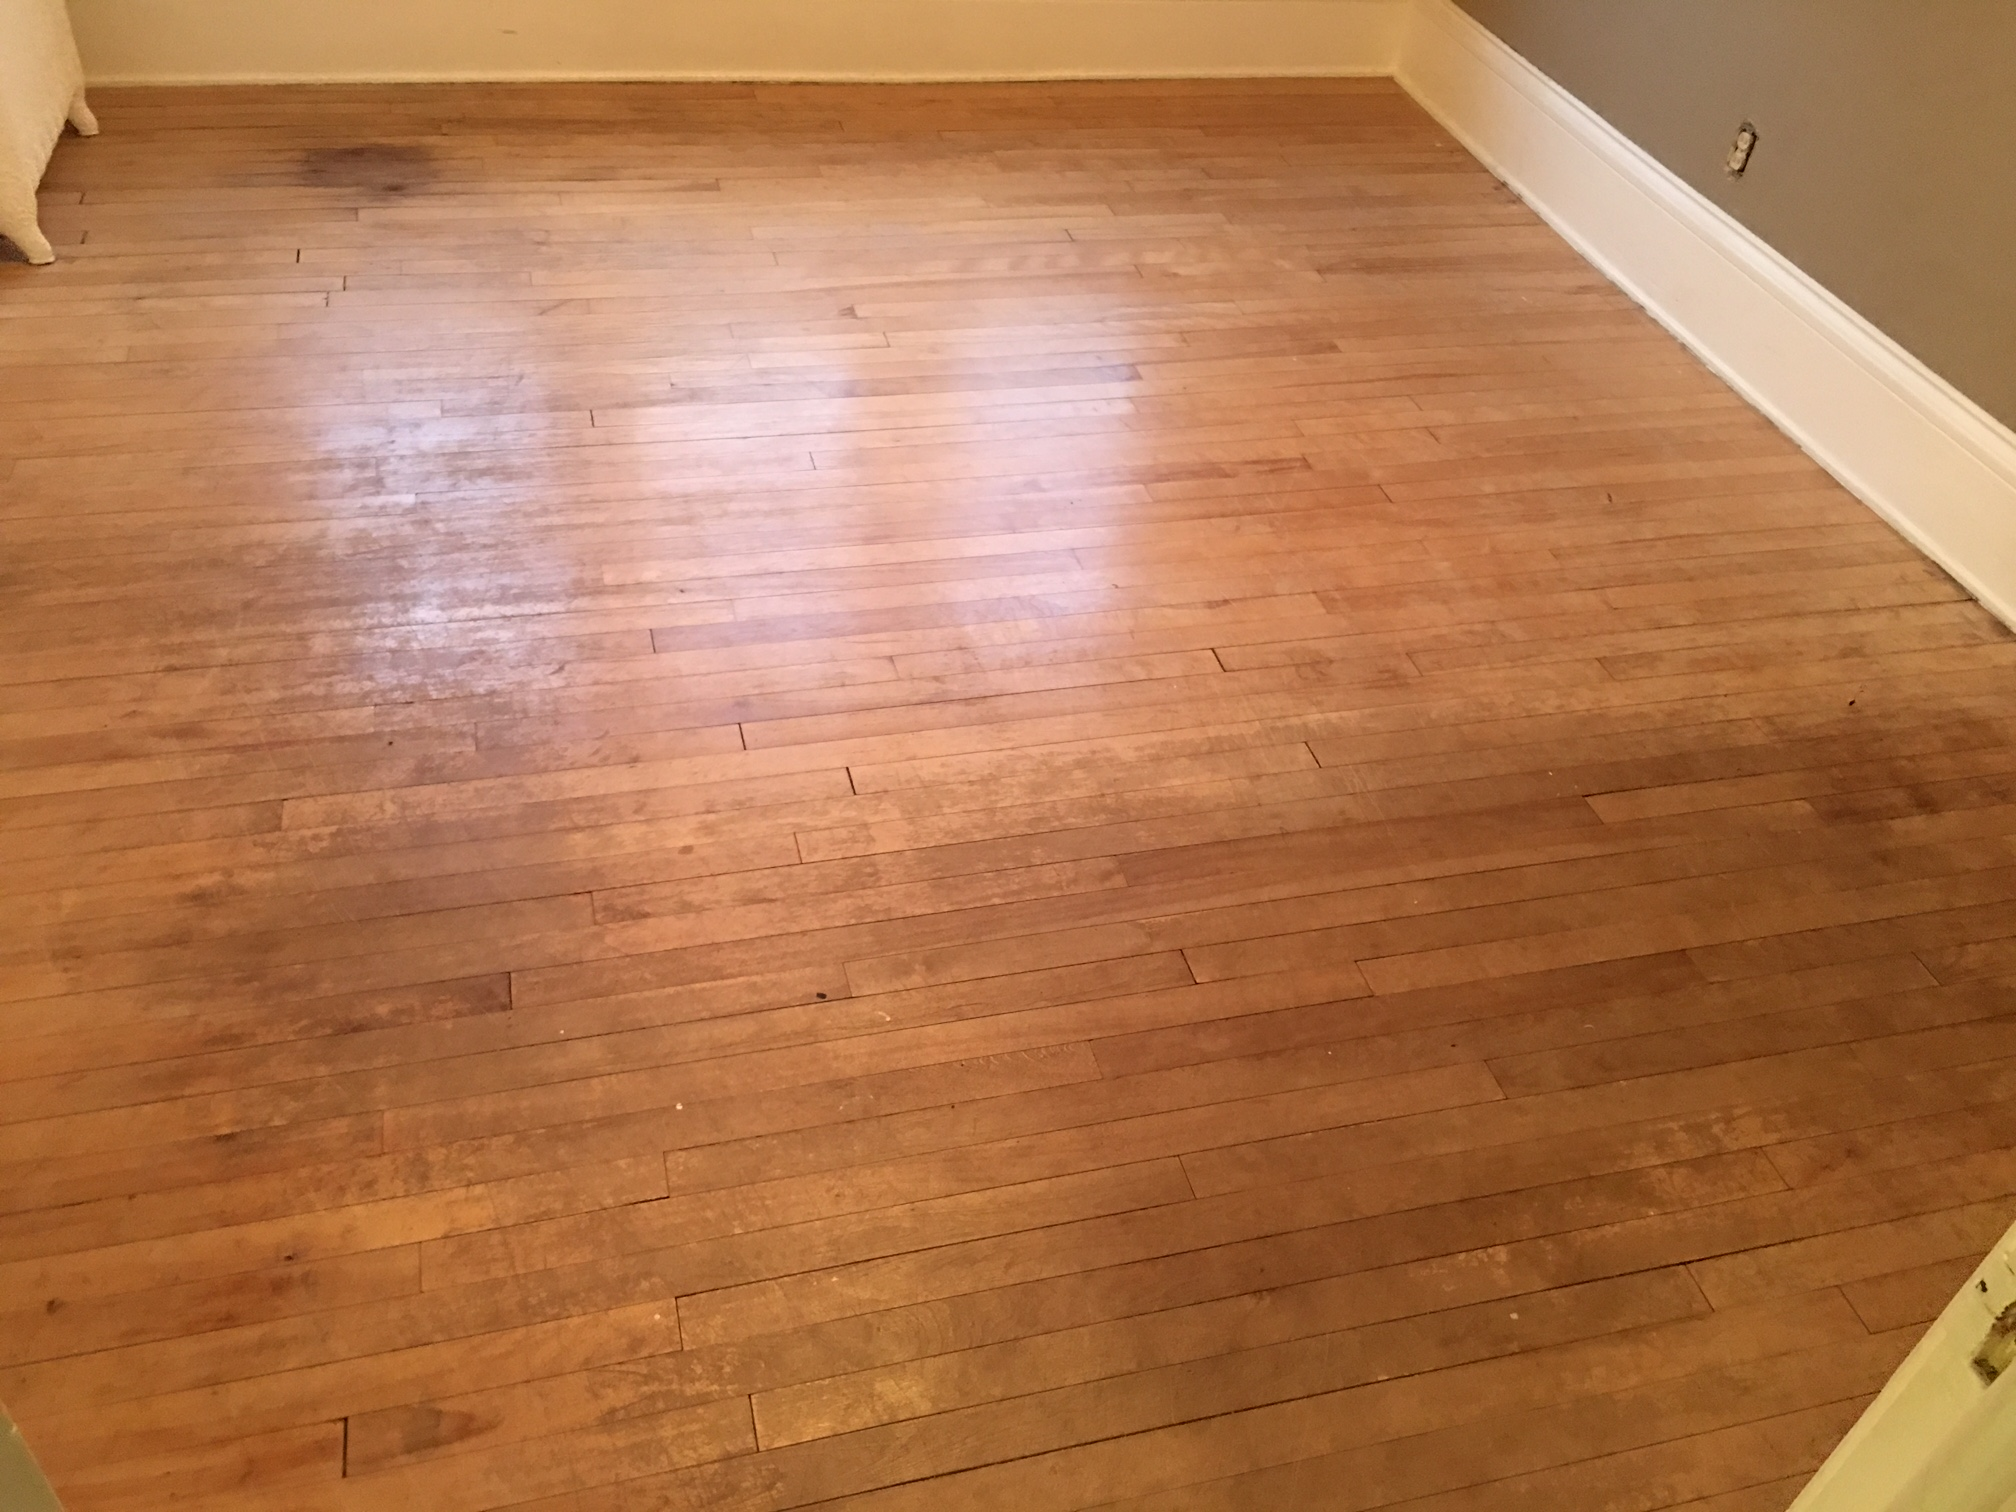 Northeast Minneapolis Maple Floors Northeast Minneapolis Maple Floors  Northeast Minneapolis Maple Floors ...